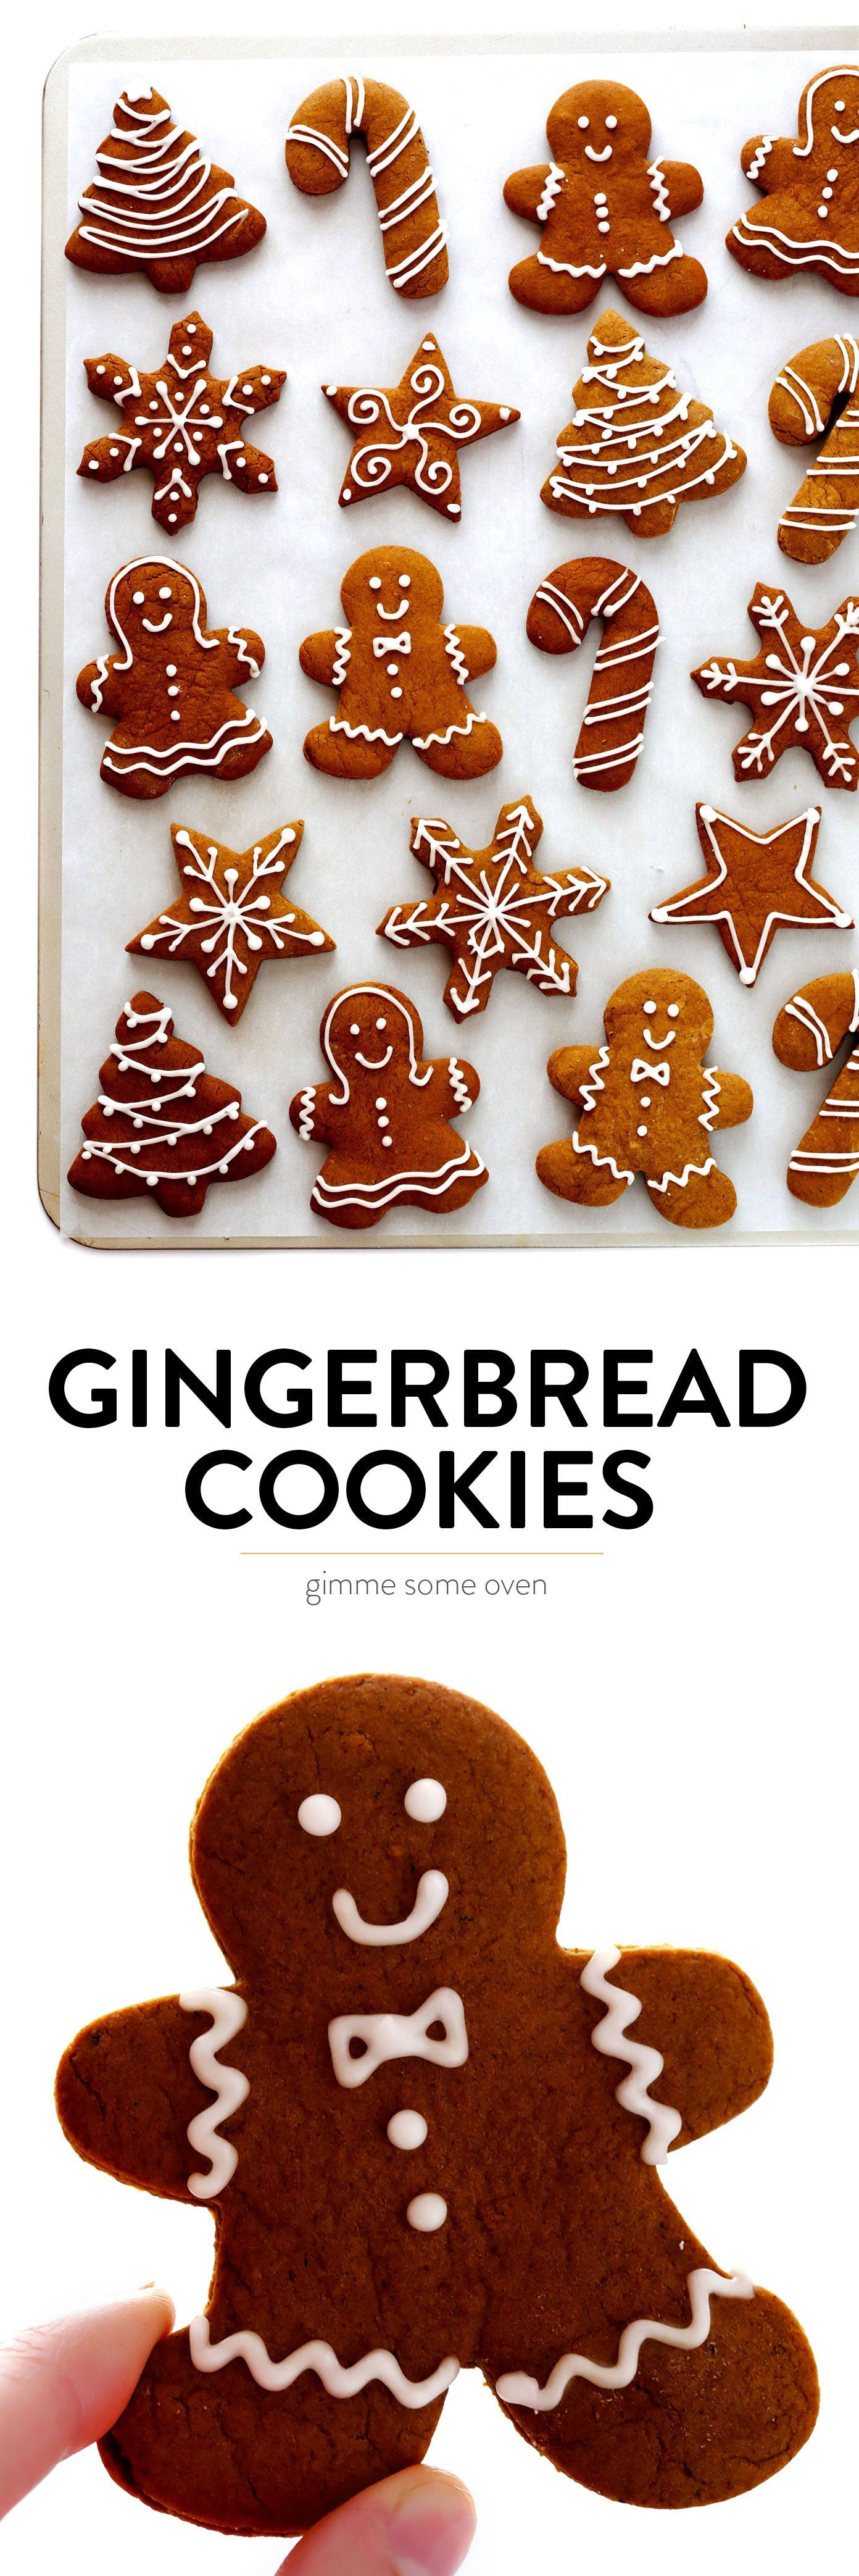 My favorite Gingerbread Cookies recipe!  It's easy to make as soft or as crispy as you'd like, the cookies are easy to cut out and decorate, and they are perfect for the holidays! | Gimme Some Oven #gingerbread #cookies #christmas #holiday #ginger #frosting #icing #dessert